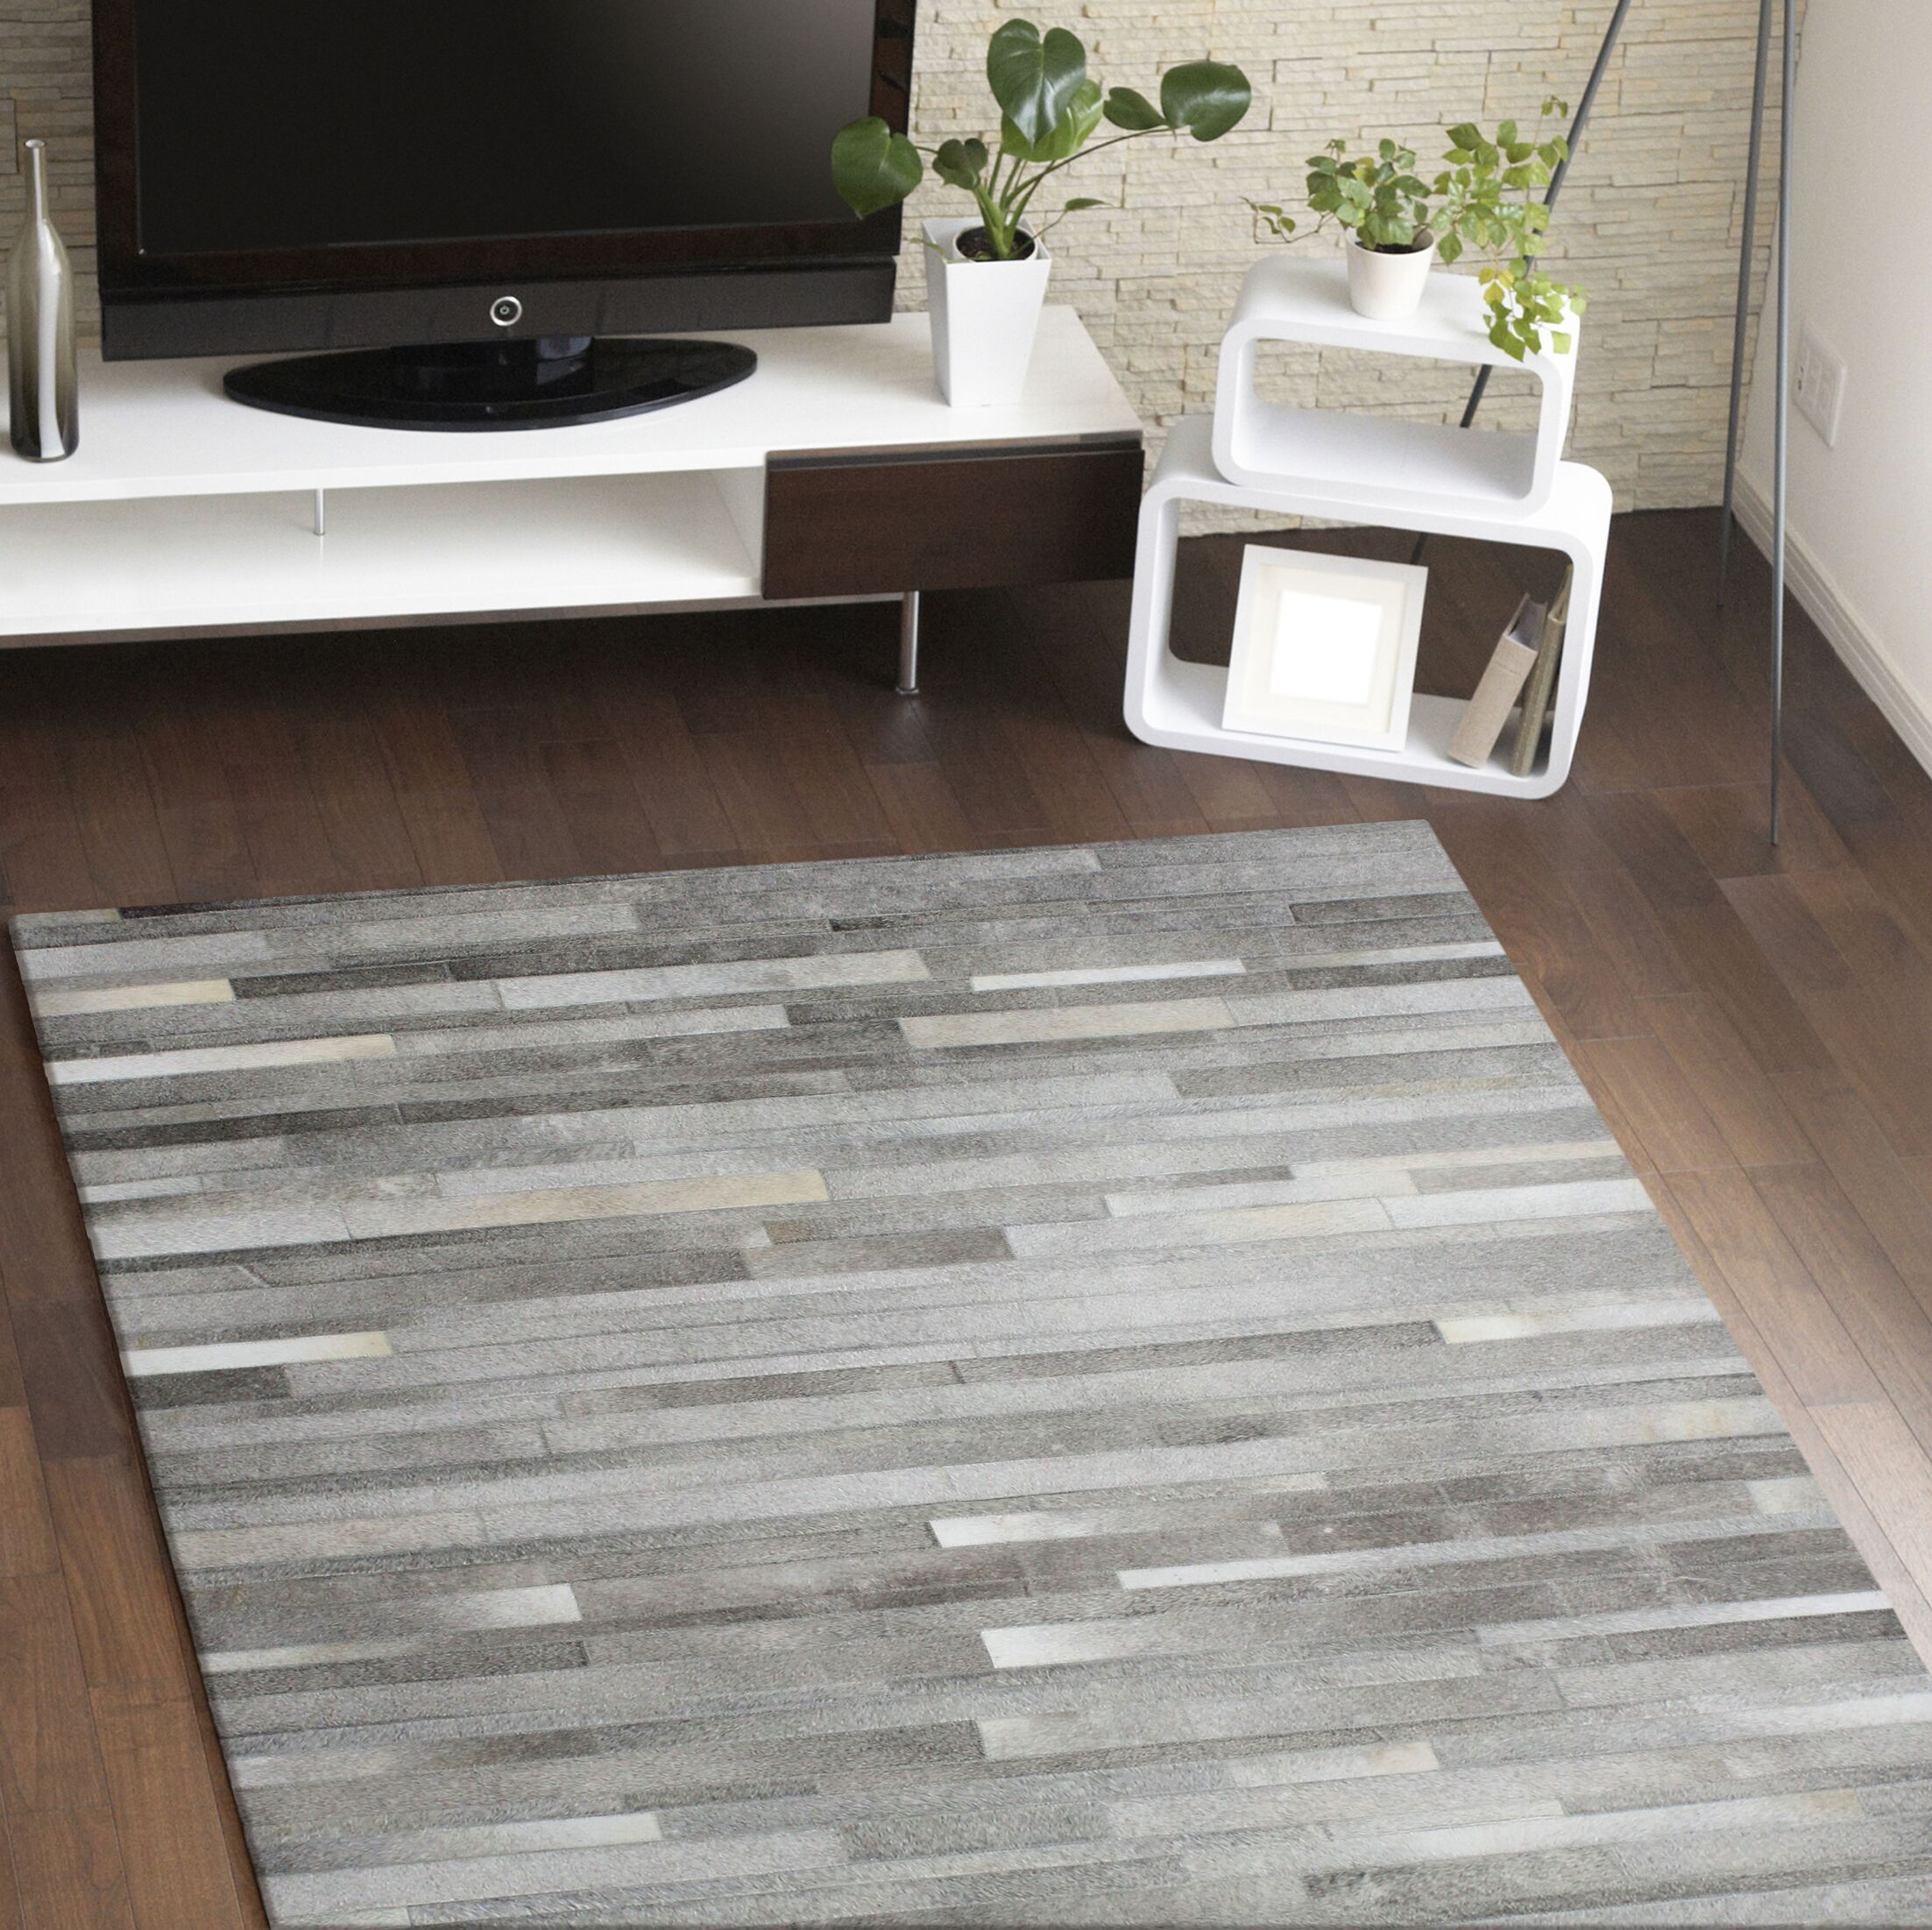 Berdina Hand Woven Gray/Silver Area Rug Rug Size: Rectangle 4' x 6'